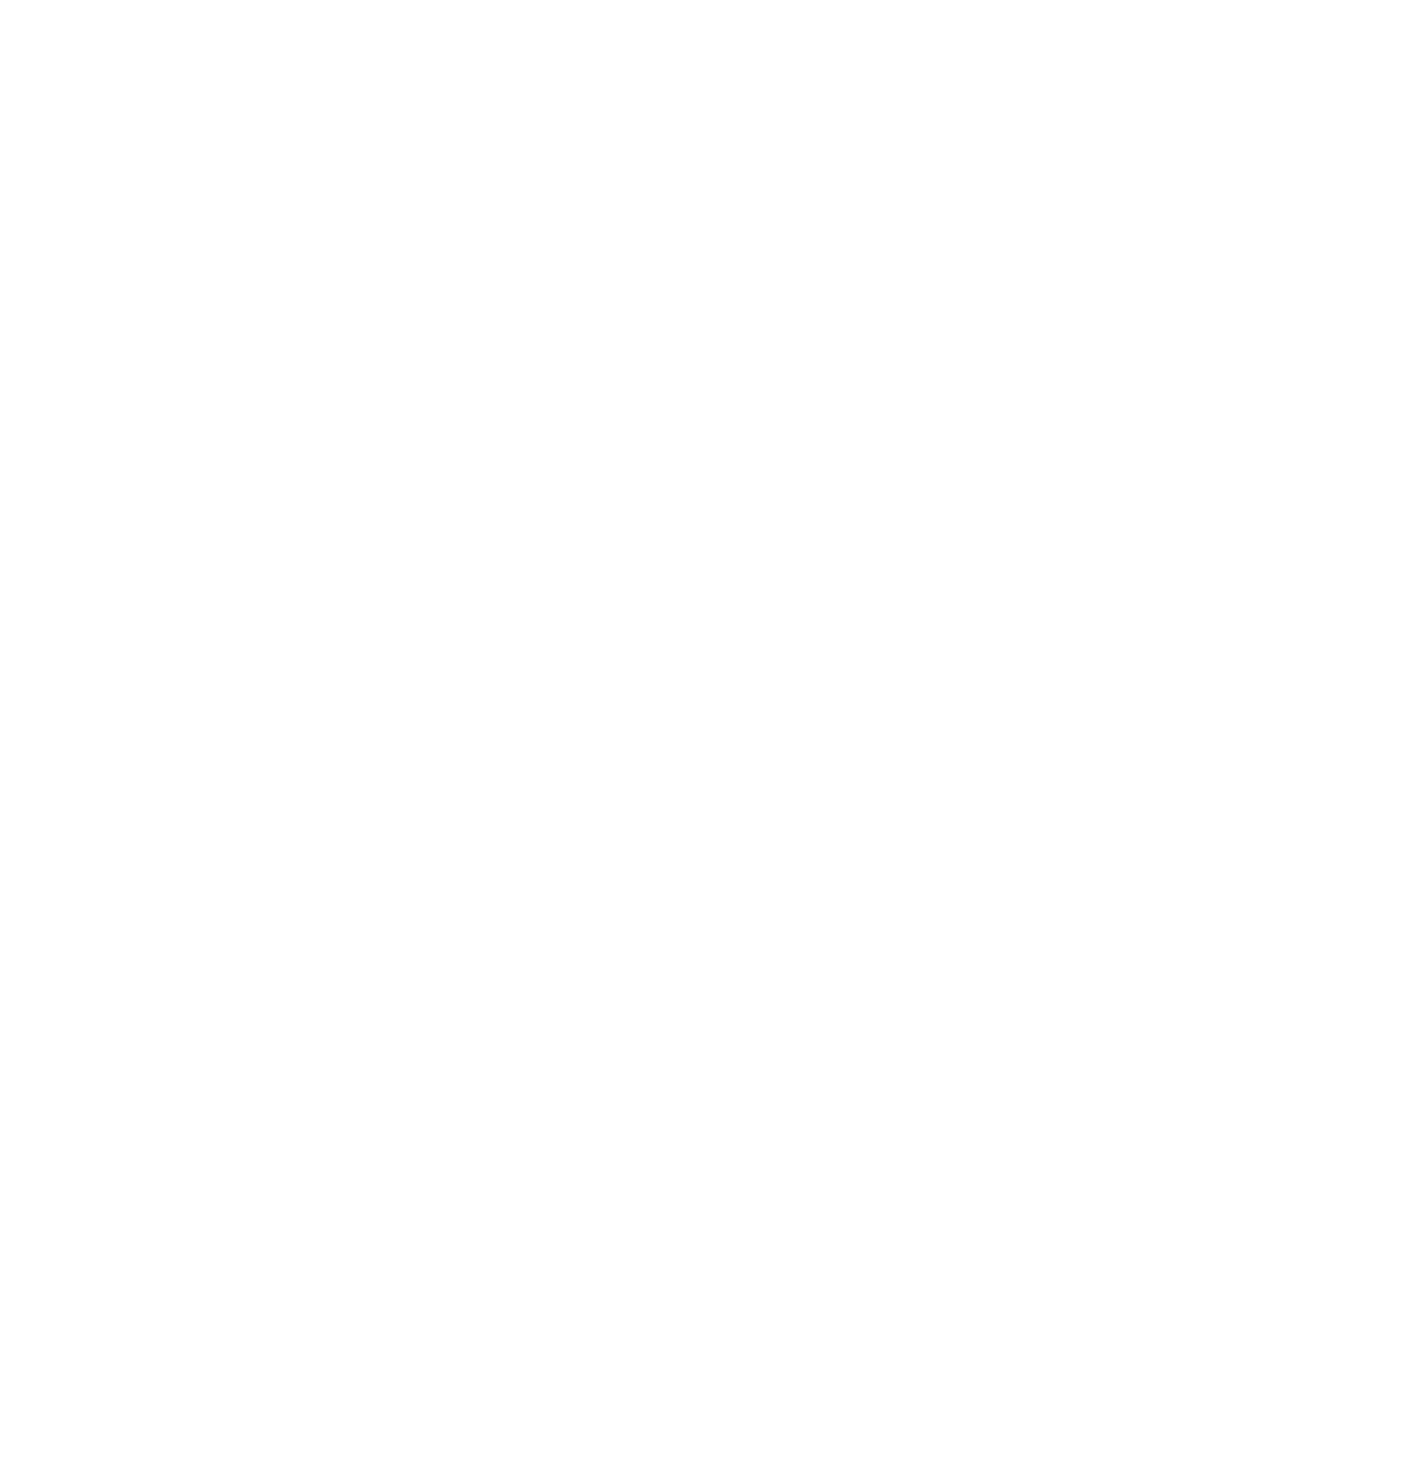 Manantler Craft Brewing Co.